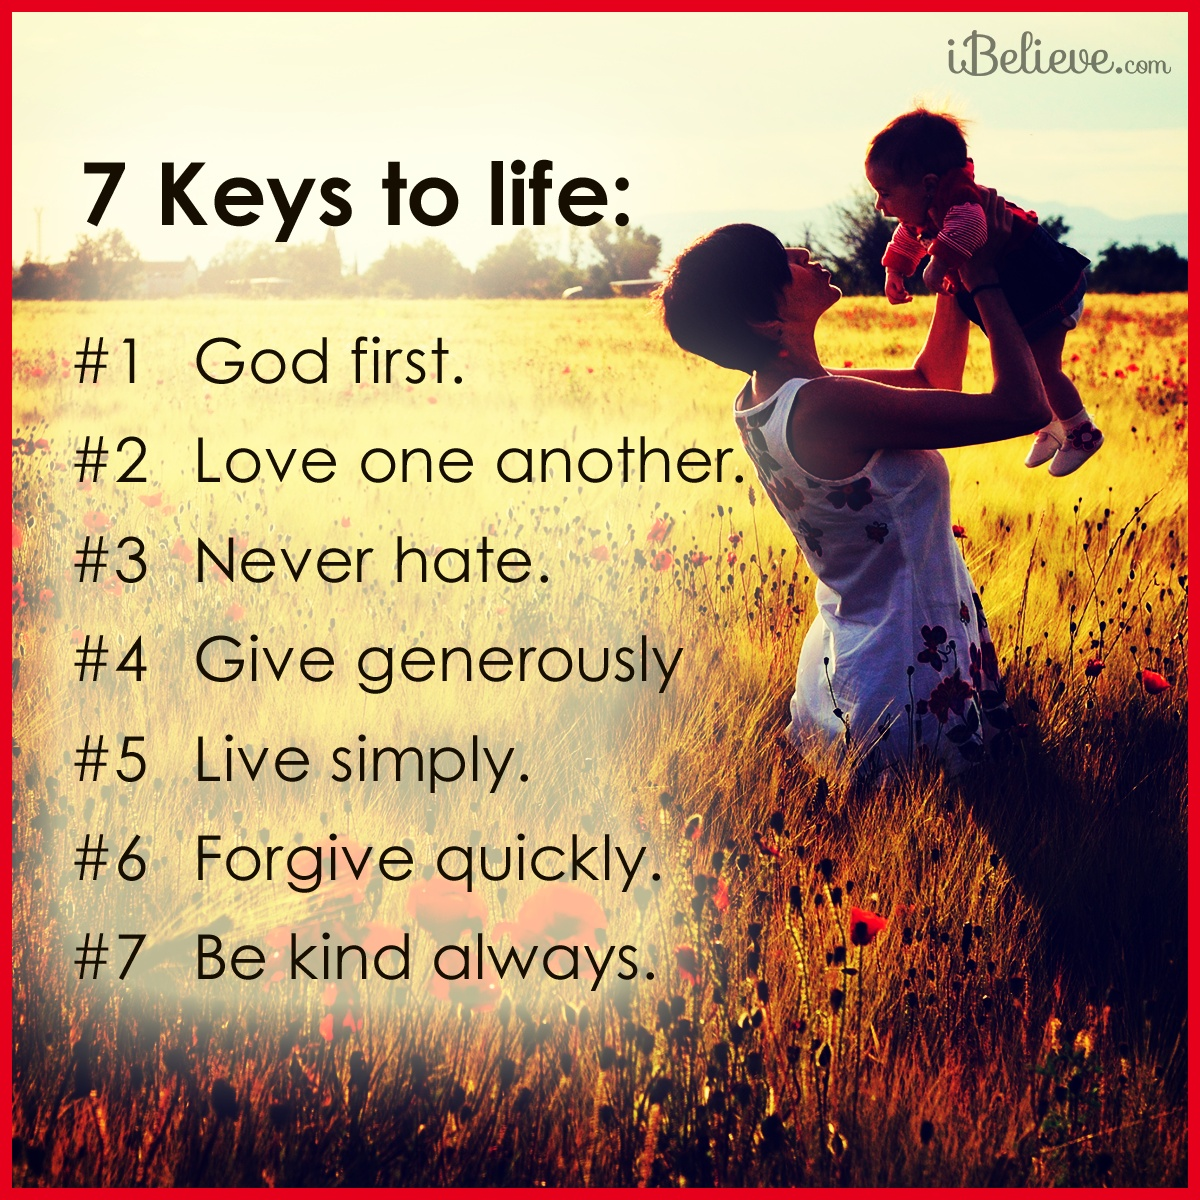 7 Keys to a Godly Life